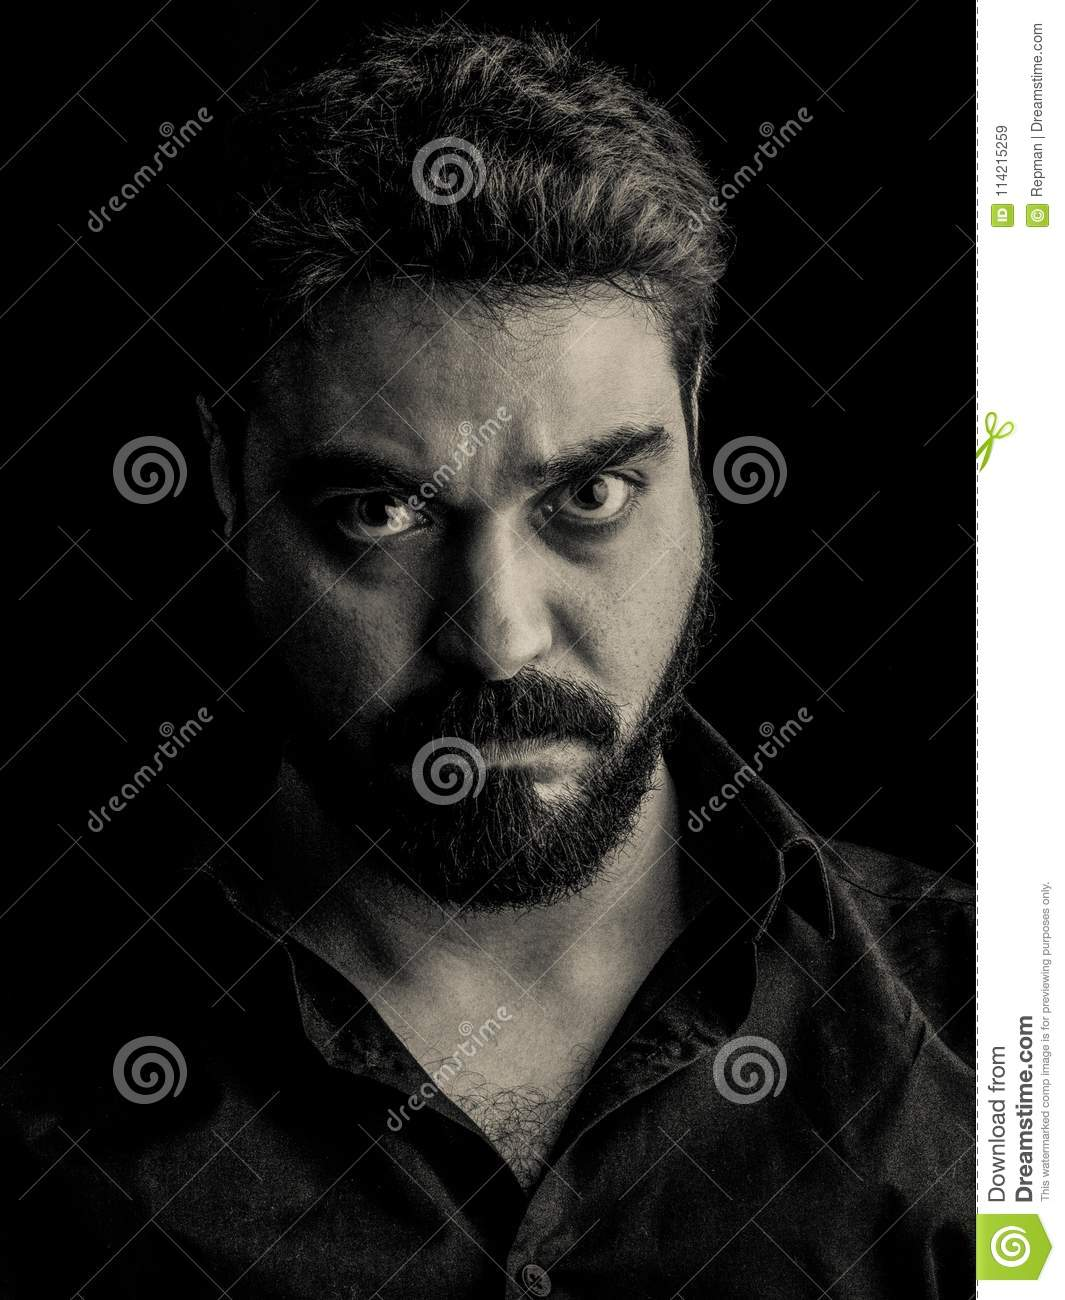 Male Determined Angry Focused Powerful Stock Image Image Of